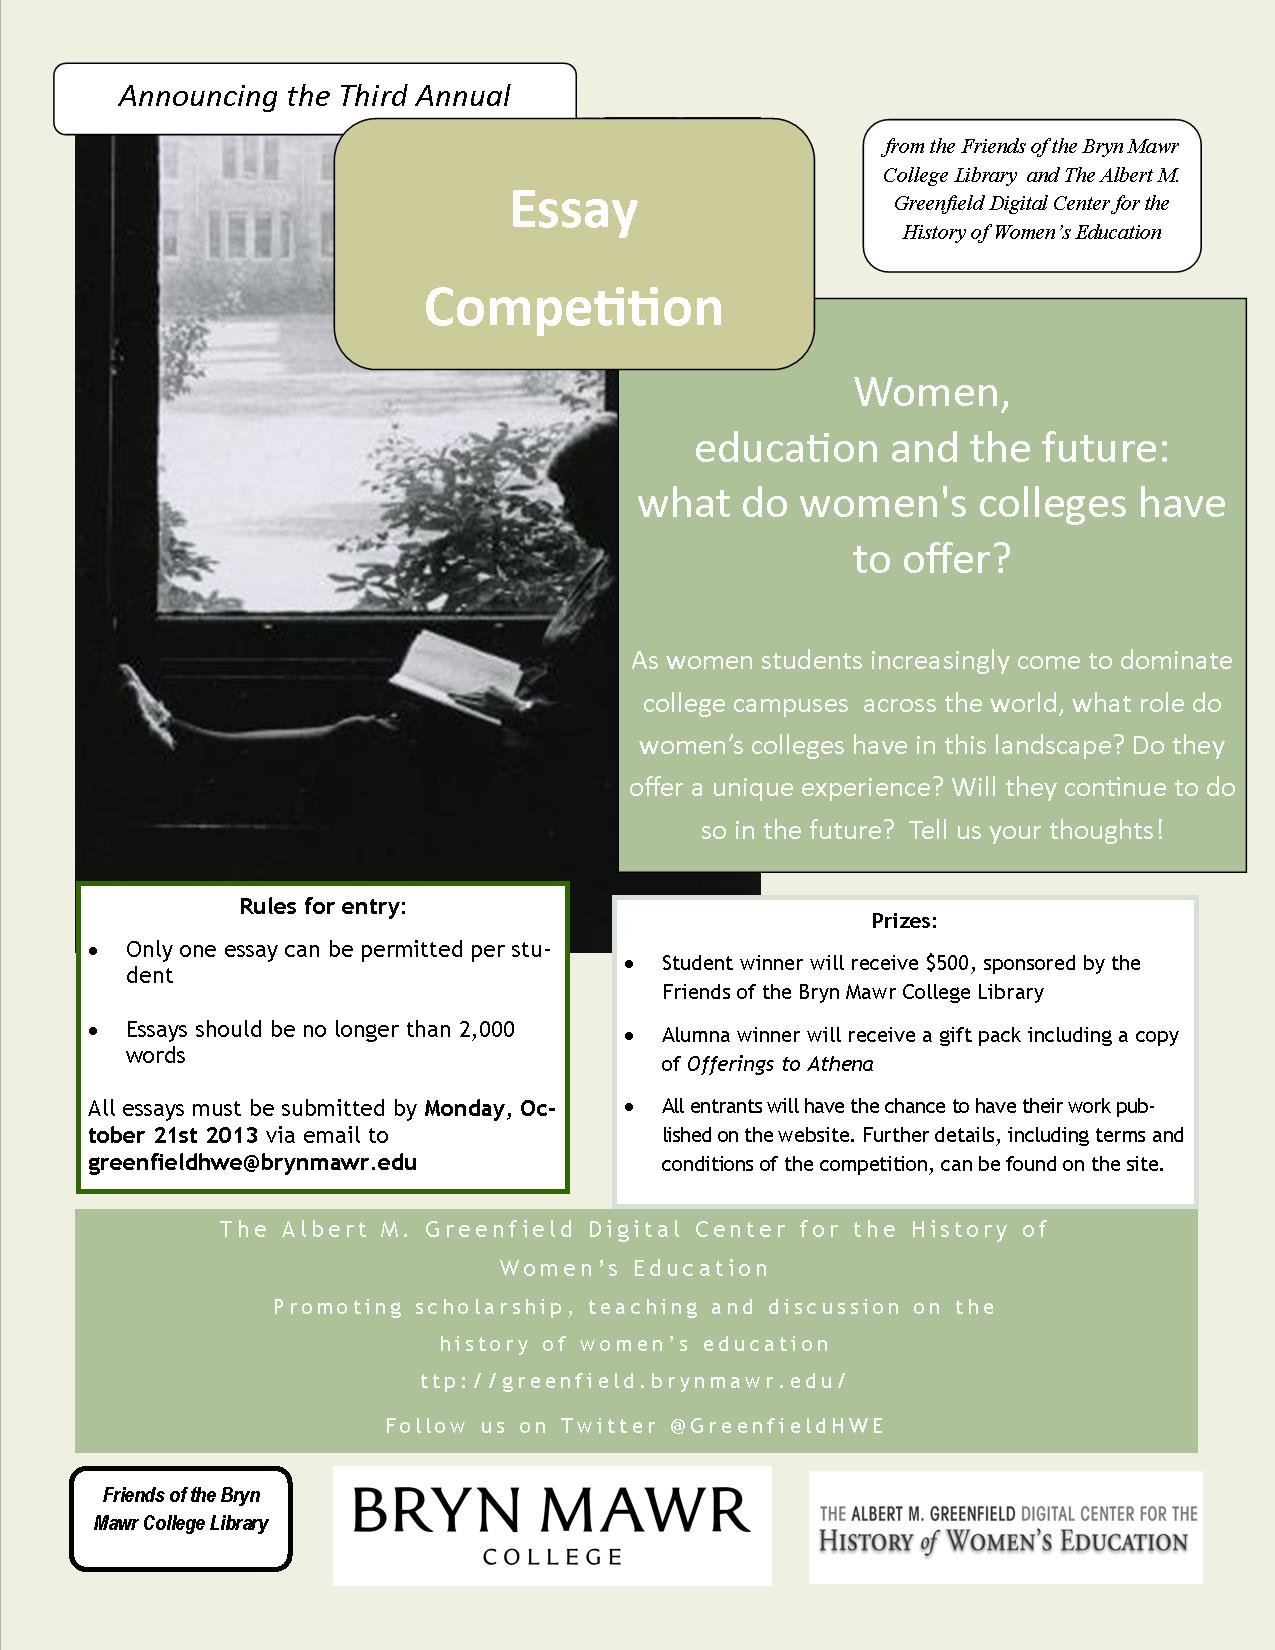 jennifer redmond educating women essay competition poster 2013